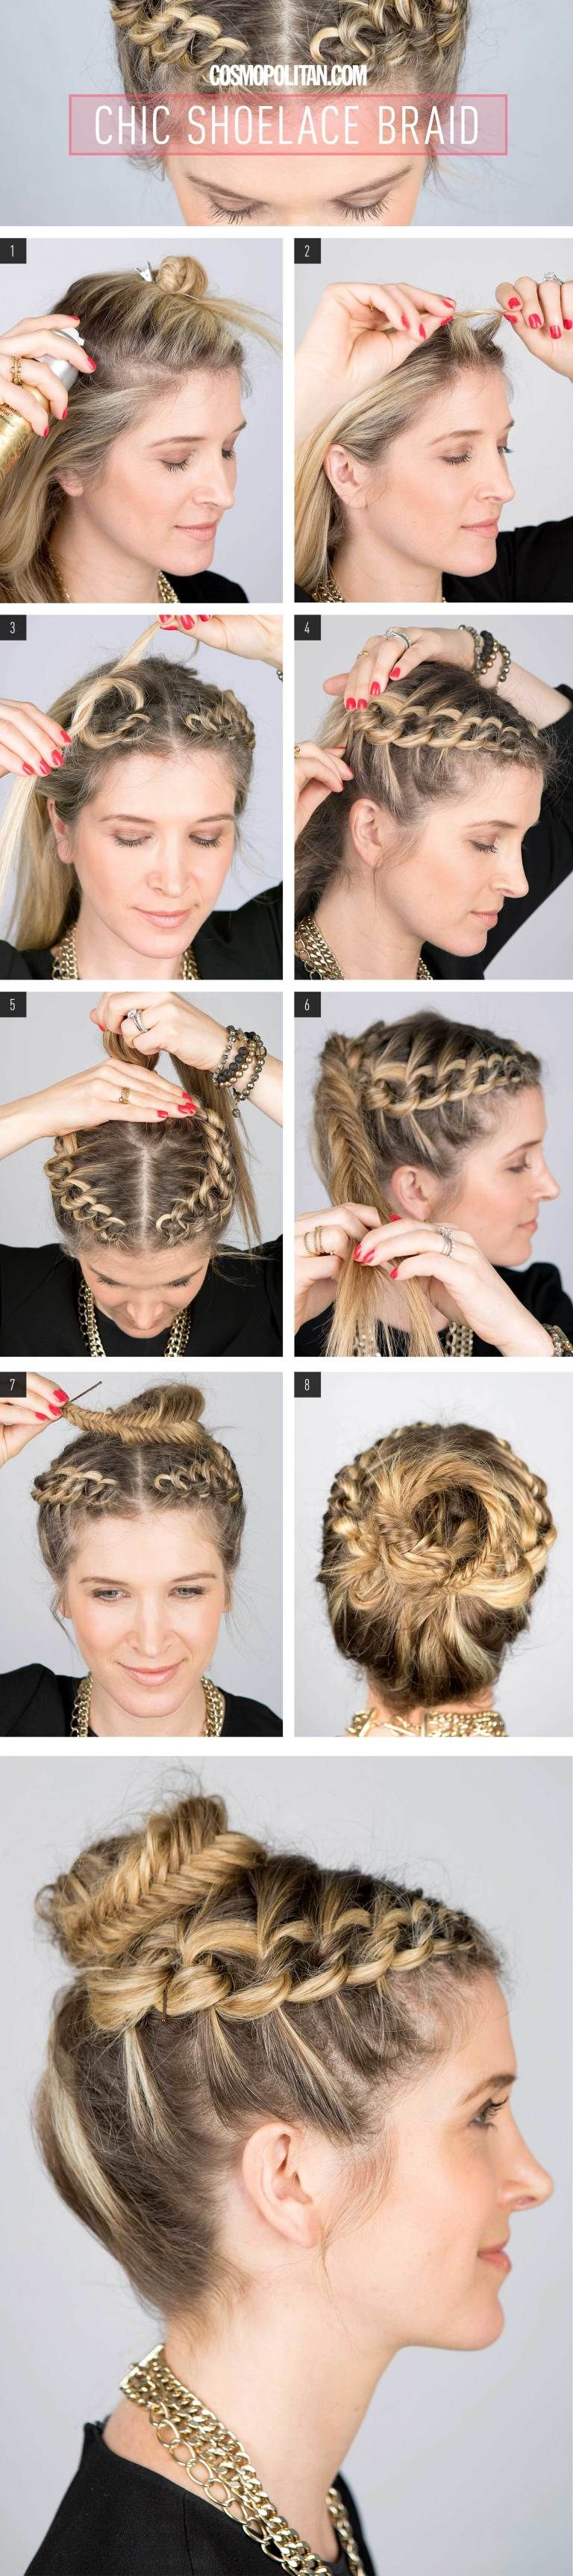 Hair How To Chic Shoelace Braid Pinterest